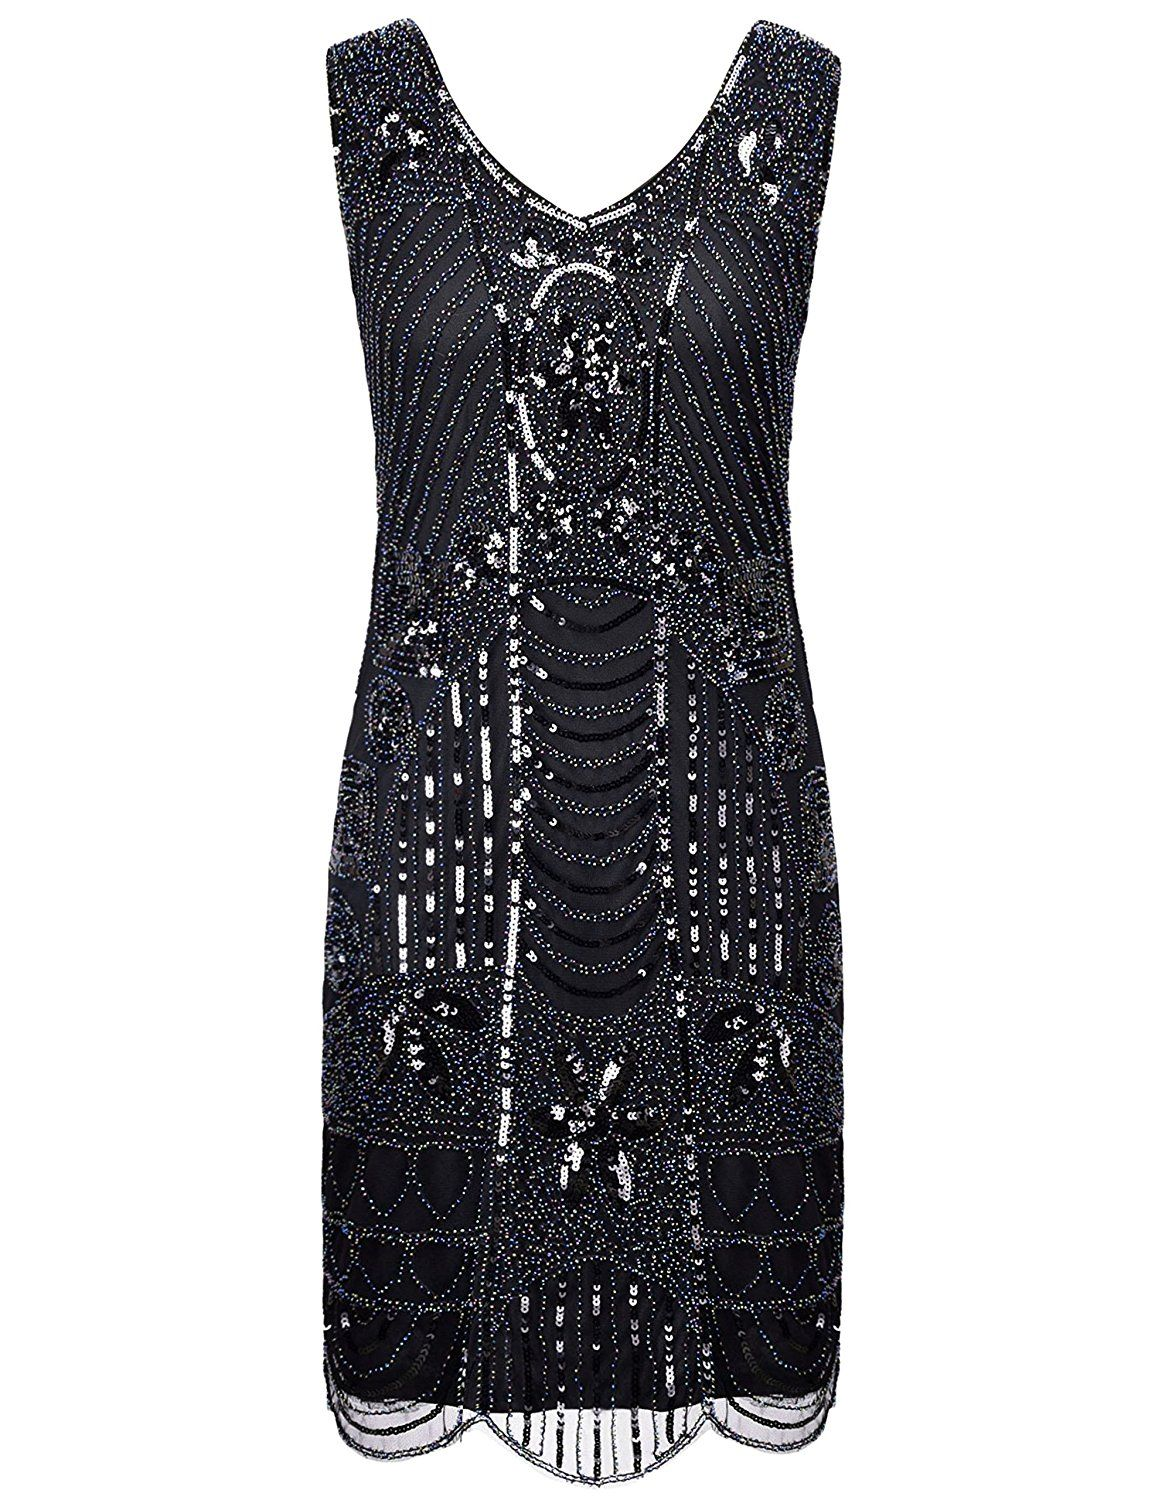 97ac482c PrettyGuide Women's 1920s Gatsby Sequin Art Deco Scalloped Hem Cocktail Flapper  Dress >>> Startling review available here : Dresses